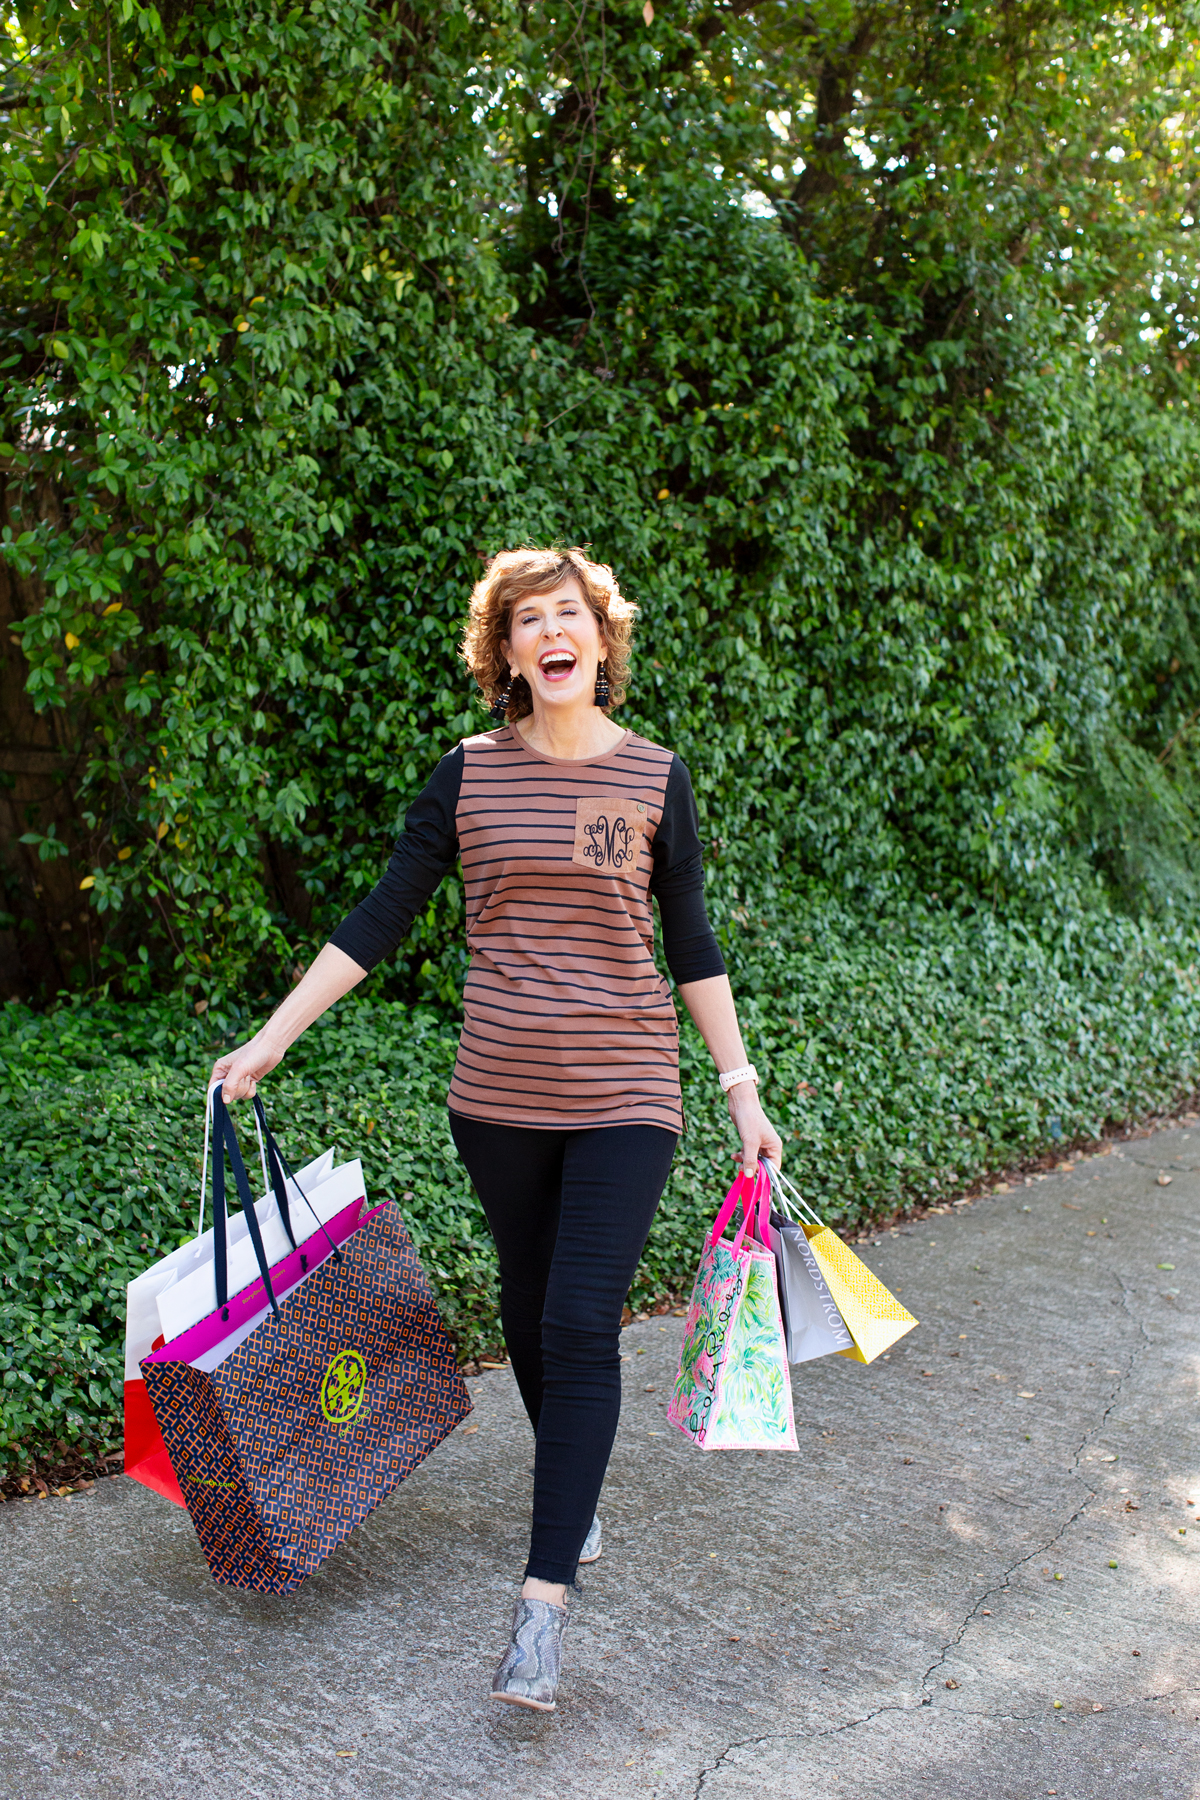 laughing woman carrying multiple shopping bags